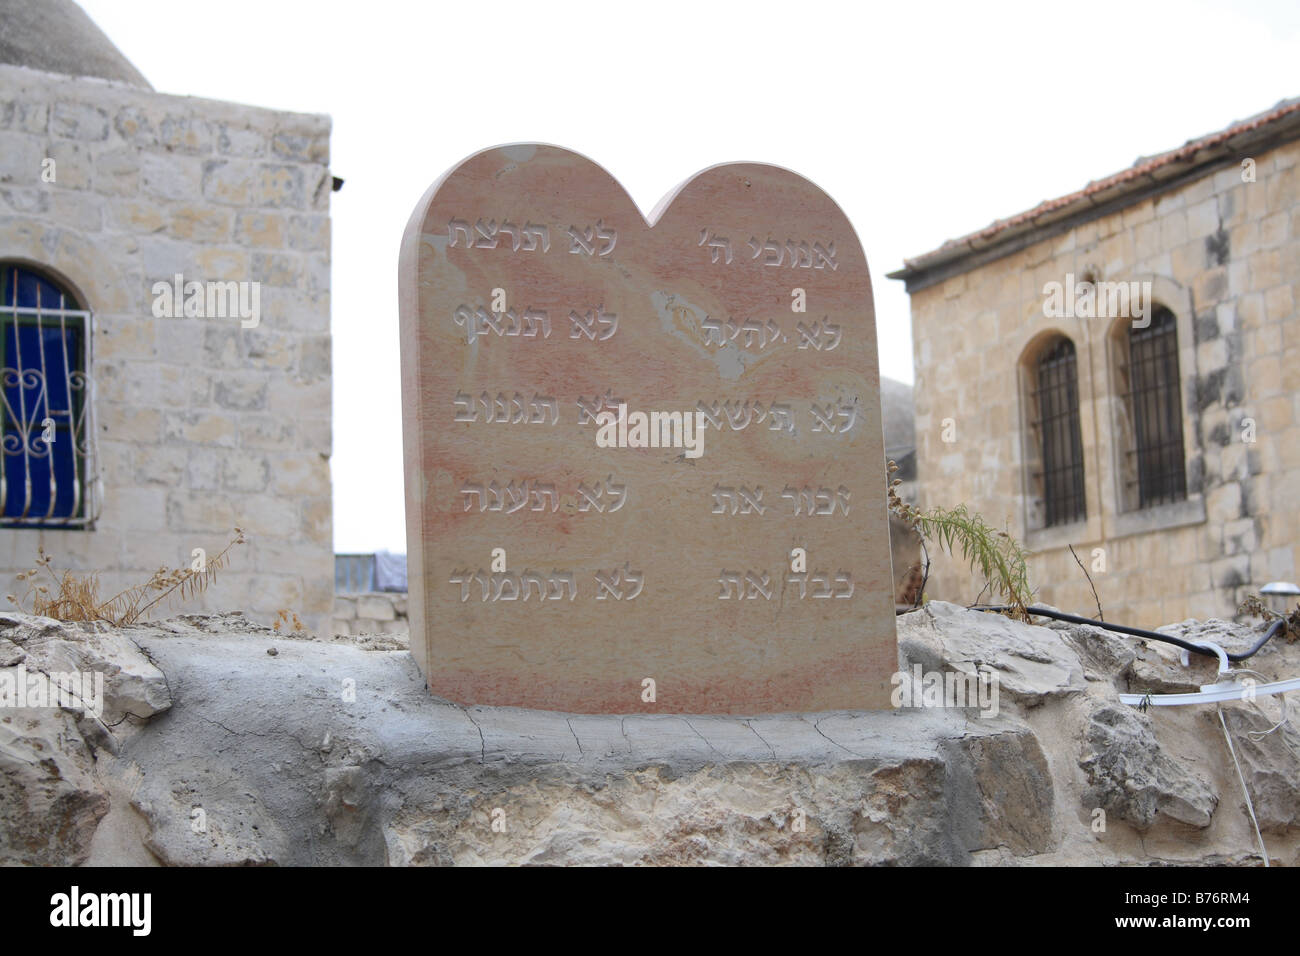 Stone tablet withTen Commandment in Jerusalem. - Stock Image